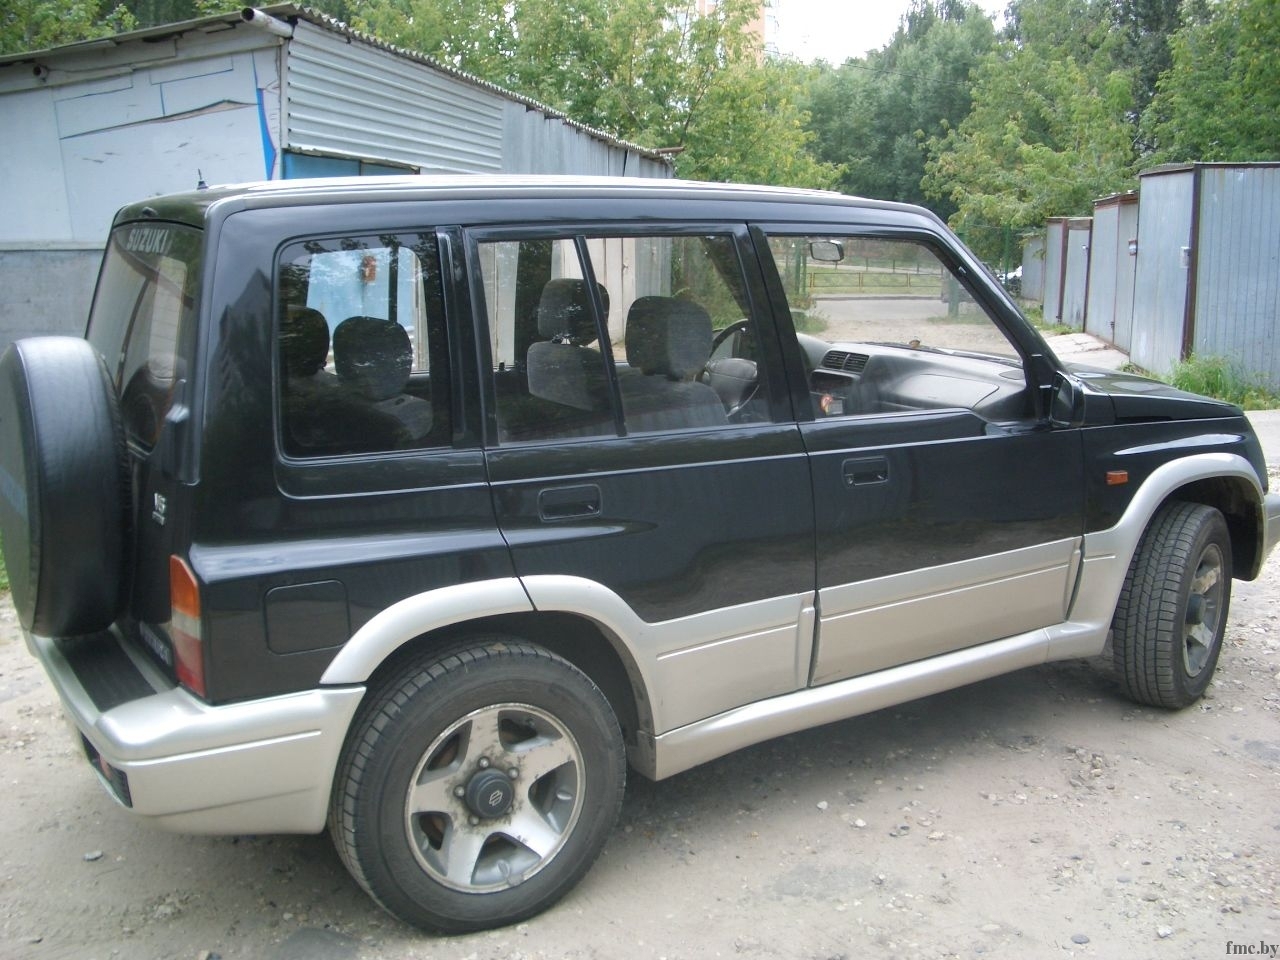 Shop accessori fuoristrada 4Technique VITARA 4PORTE DAL 1988 AL 2005